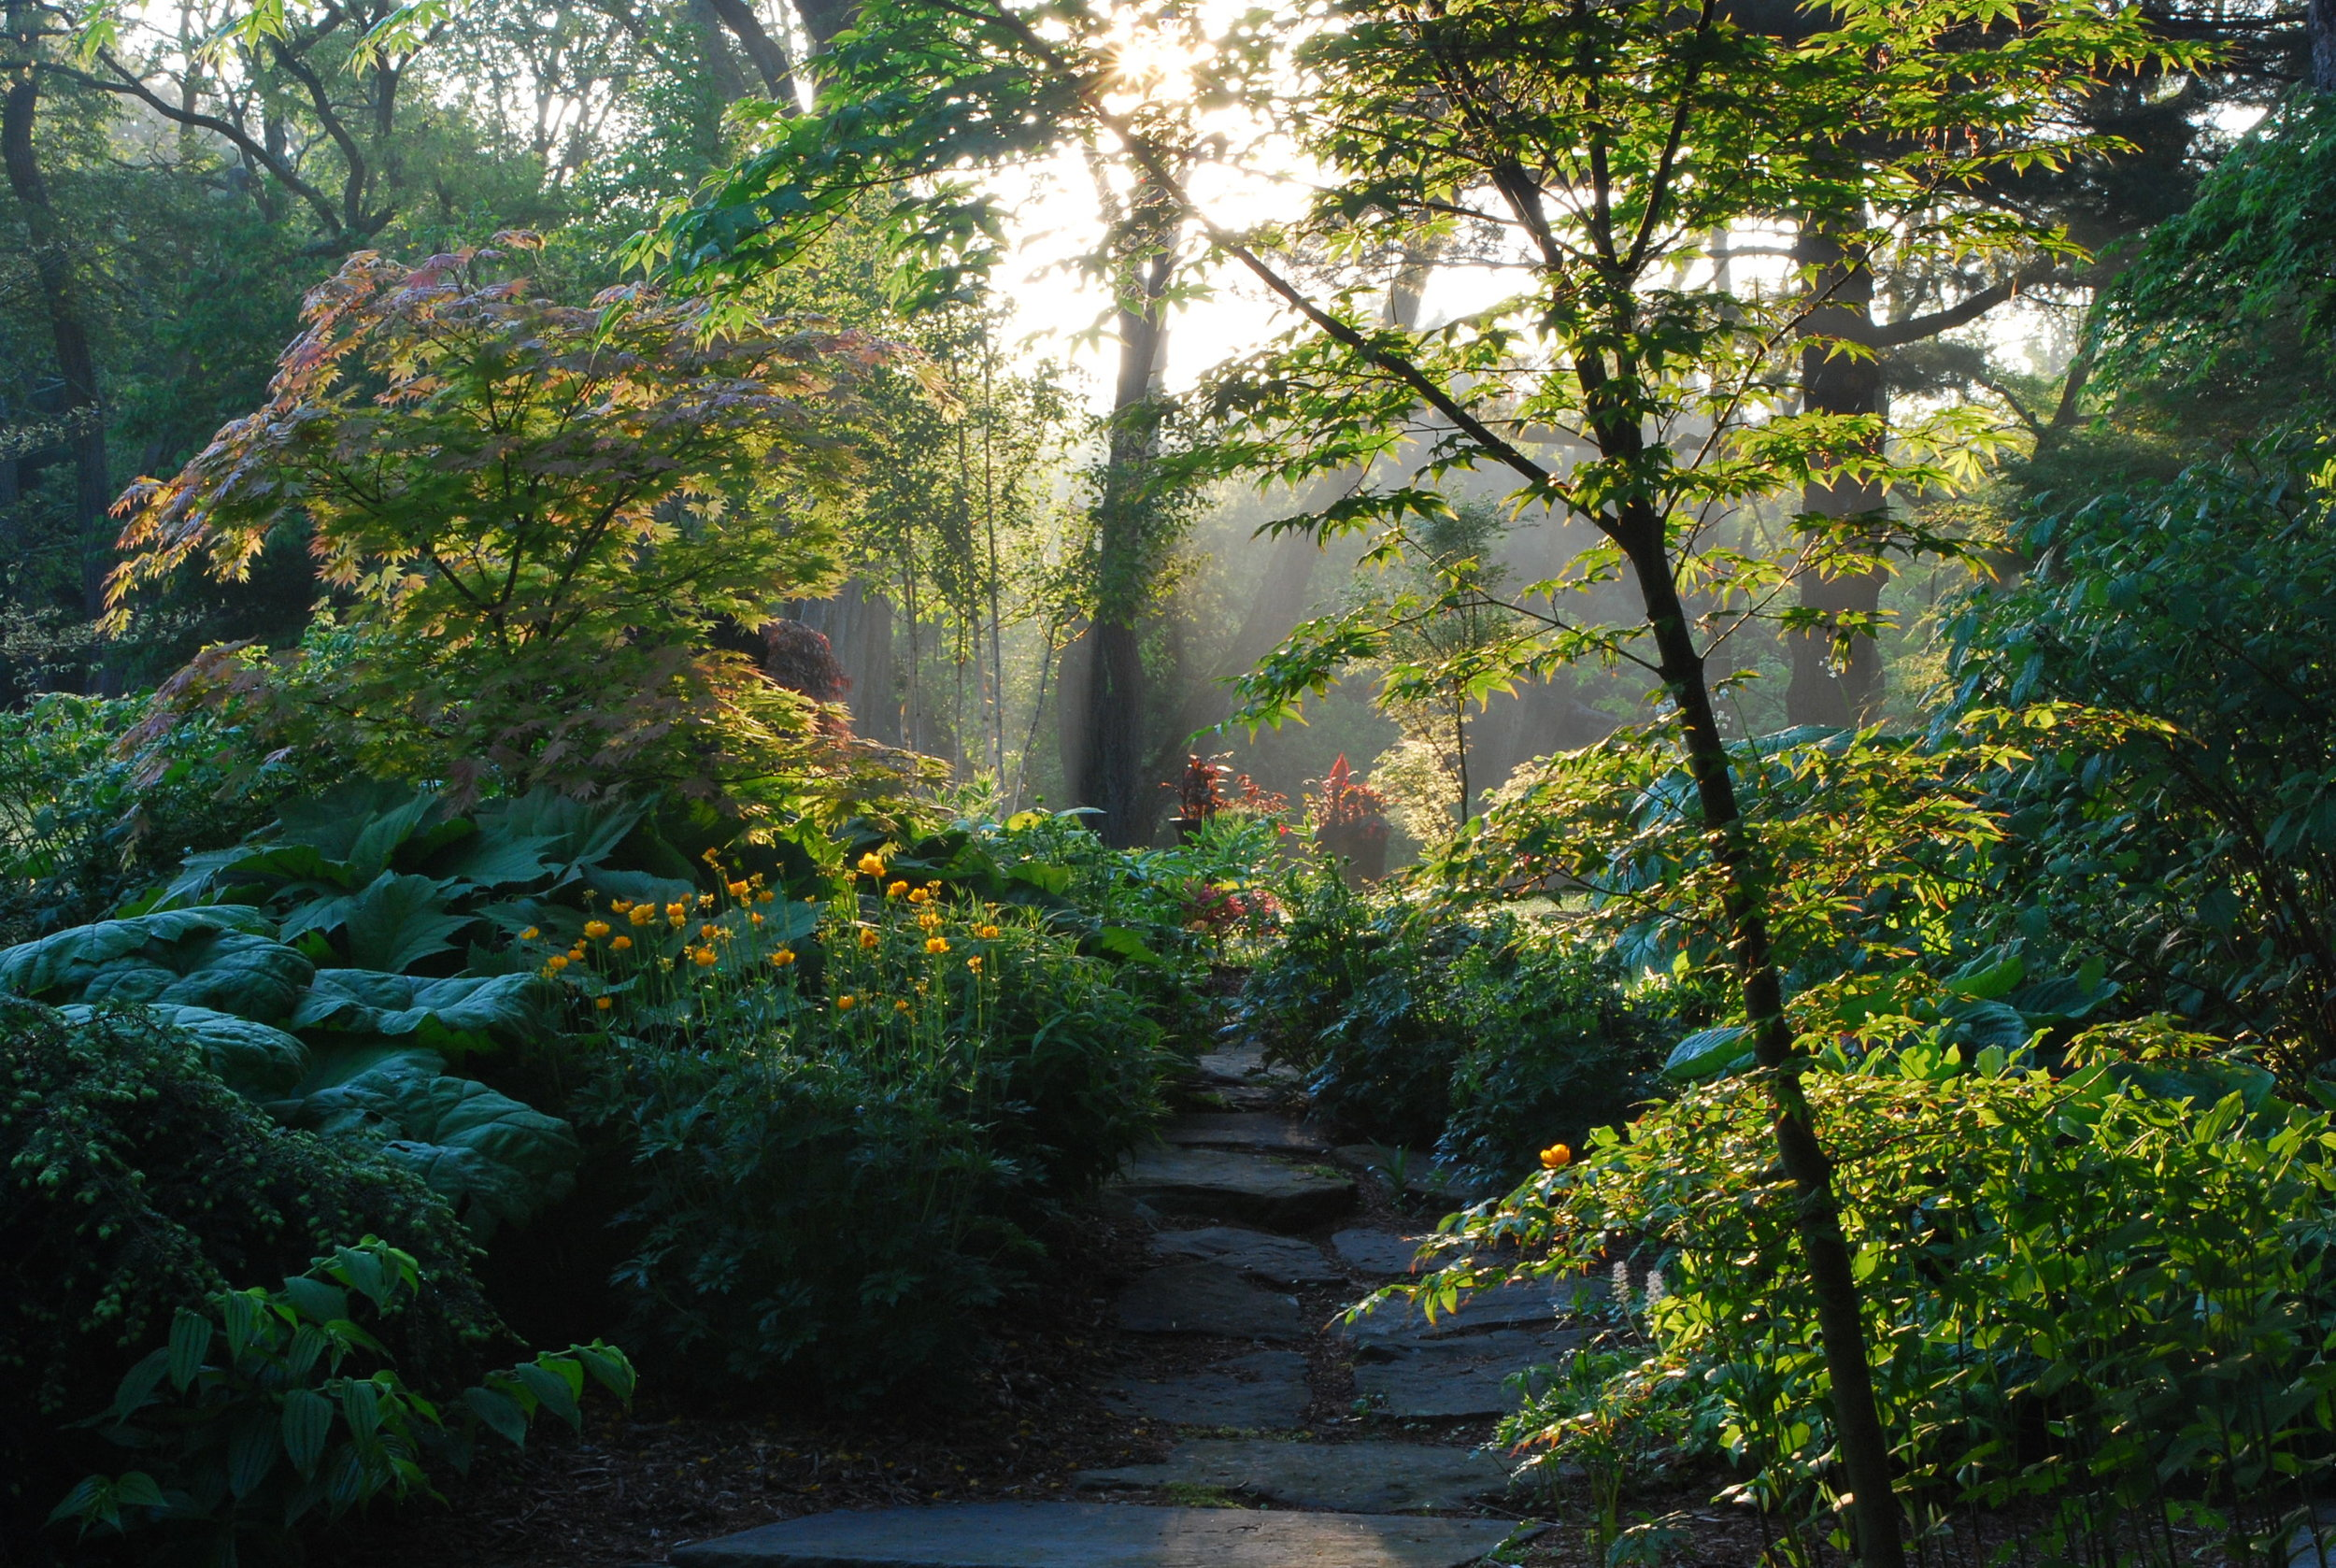 A stone path disappears through the lush growth of woodland perennials and trees at Stone Arches.